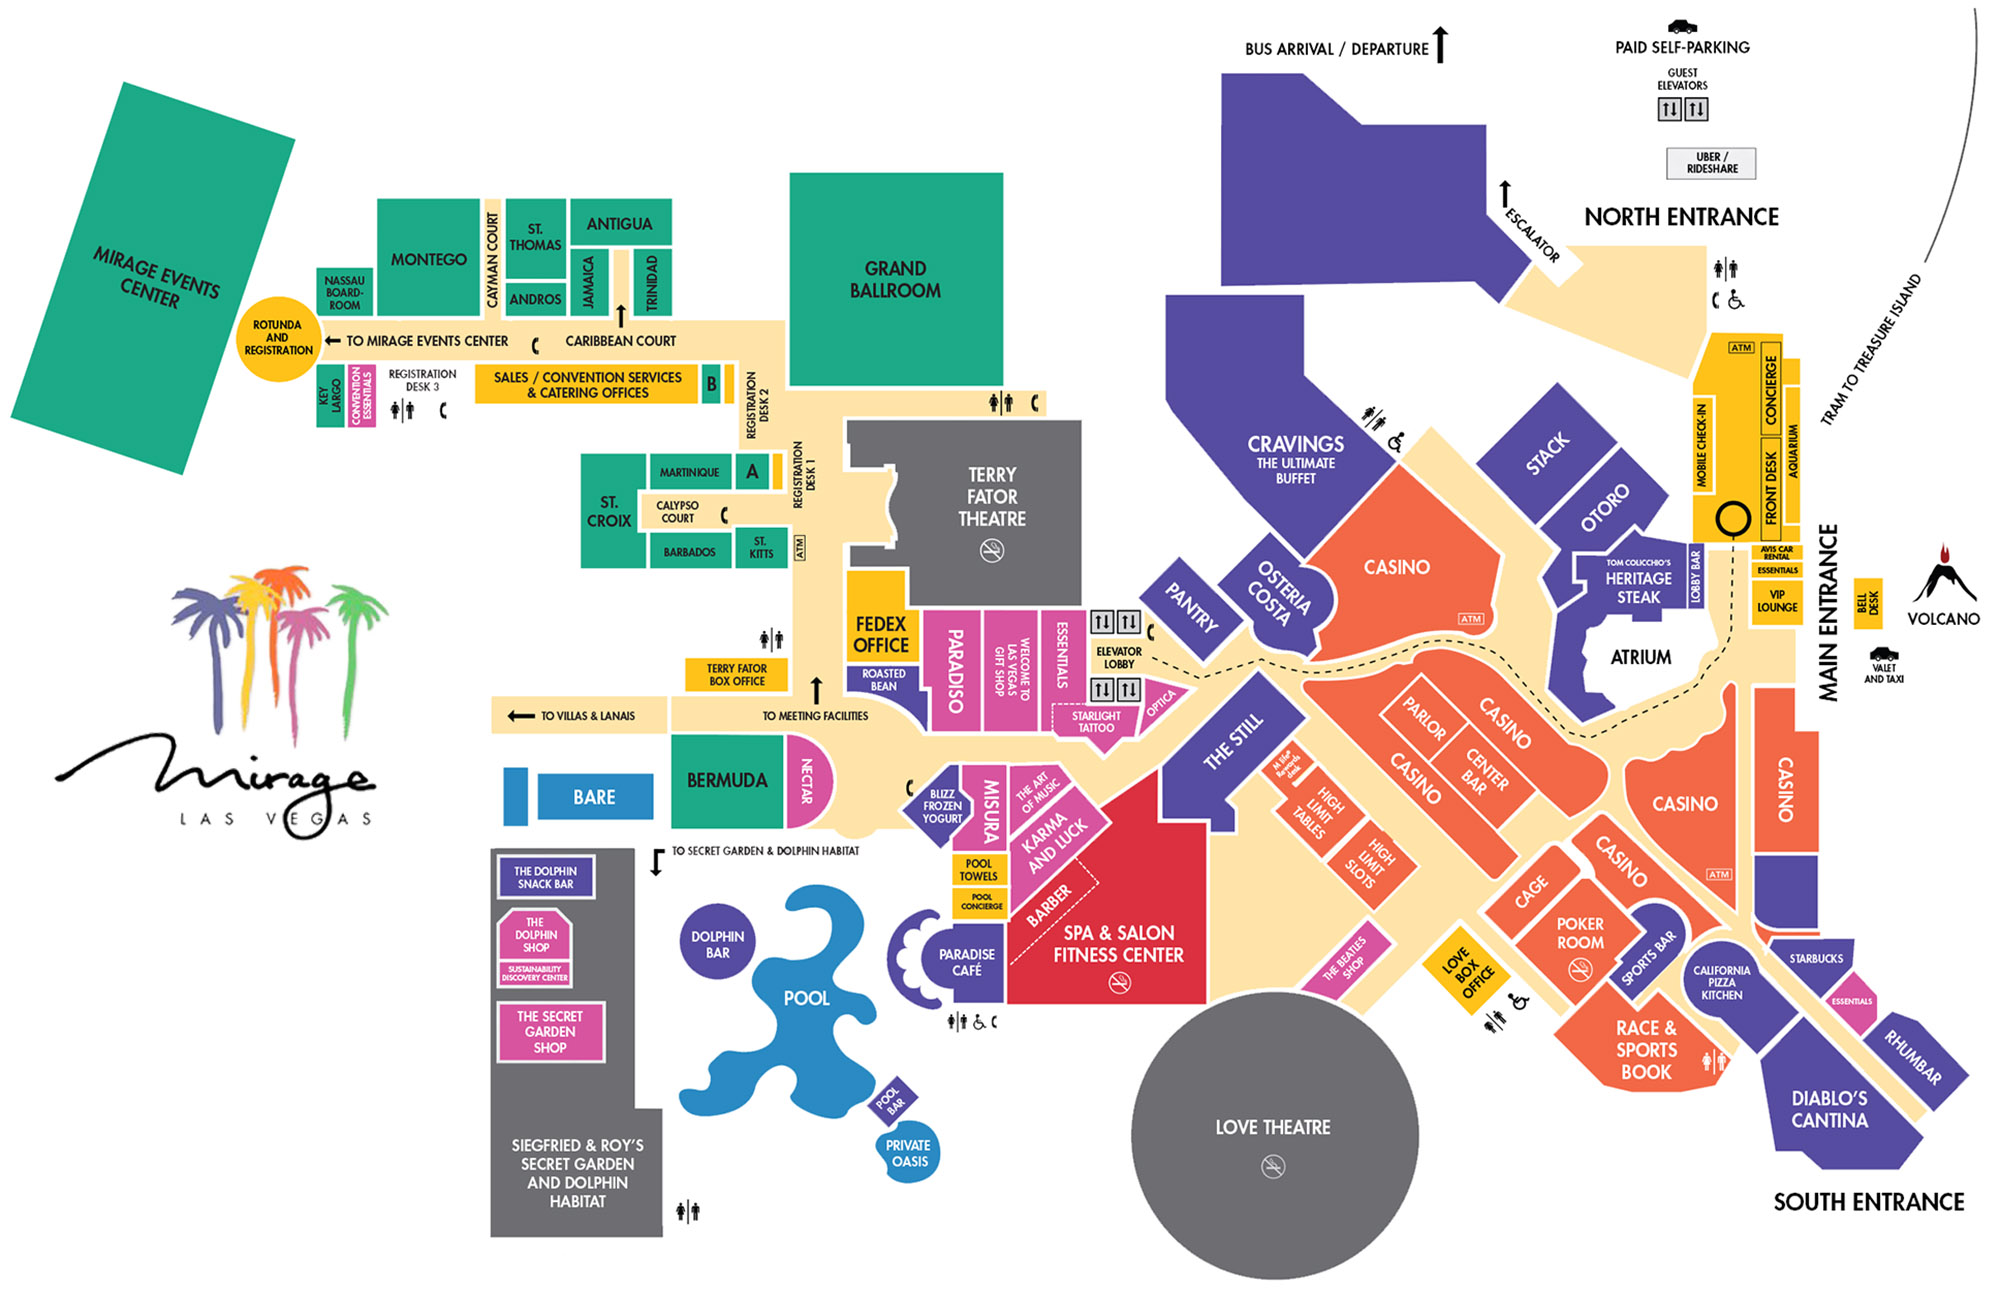 Mirage Casino Property Map Floor Plans Las Vegas